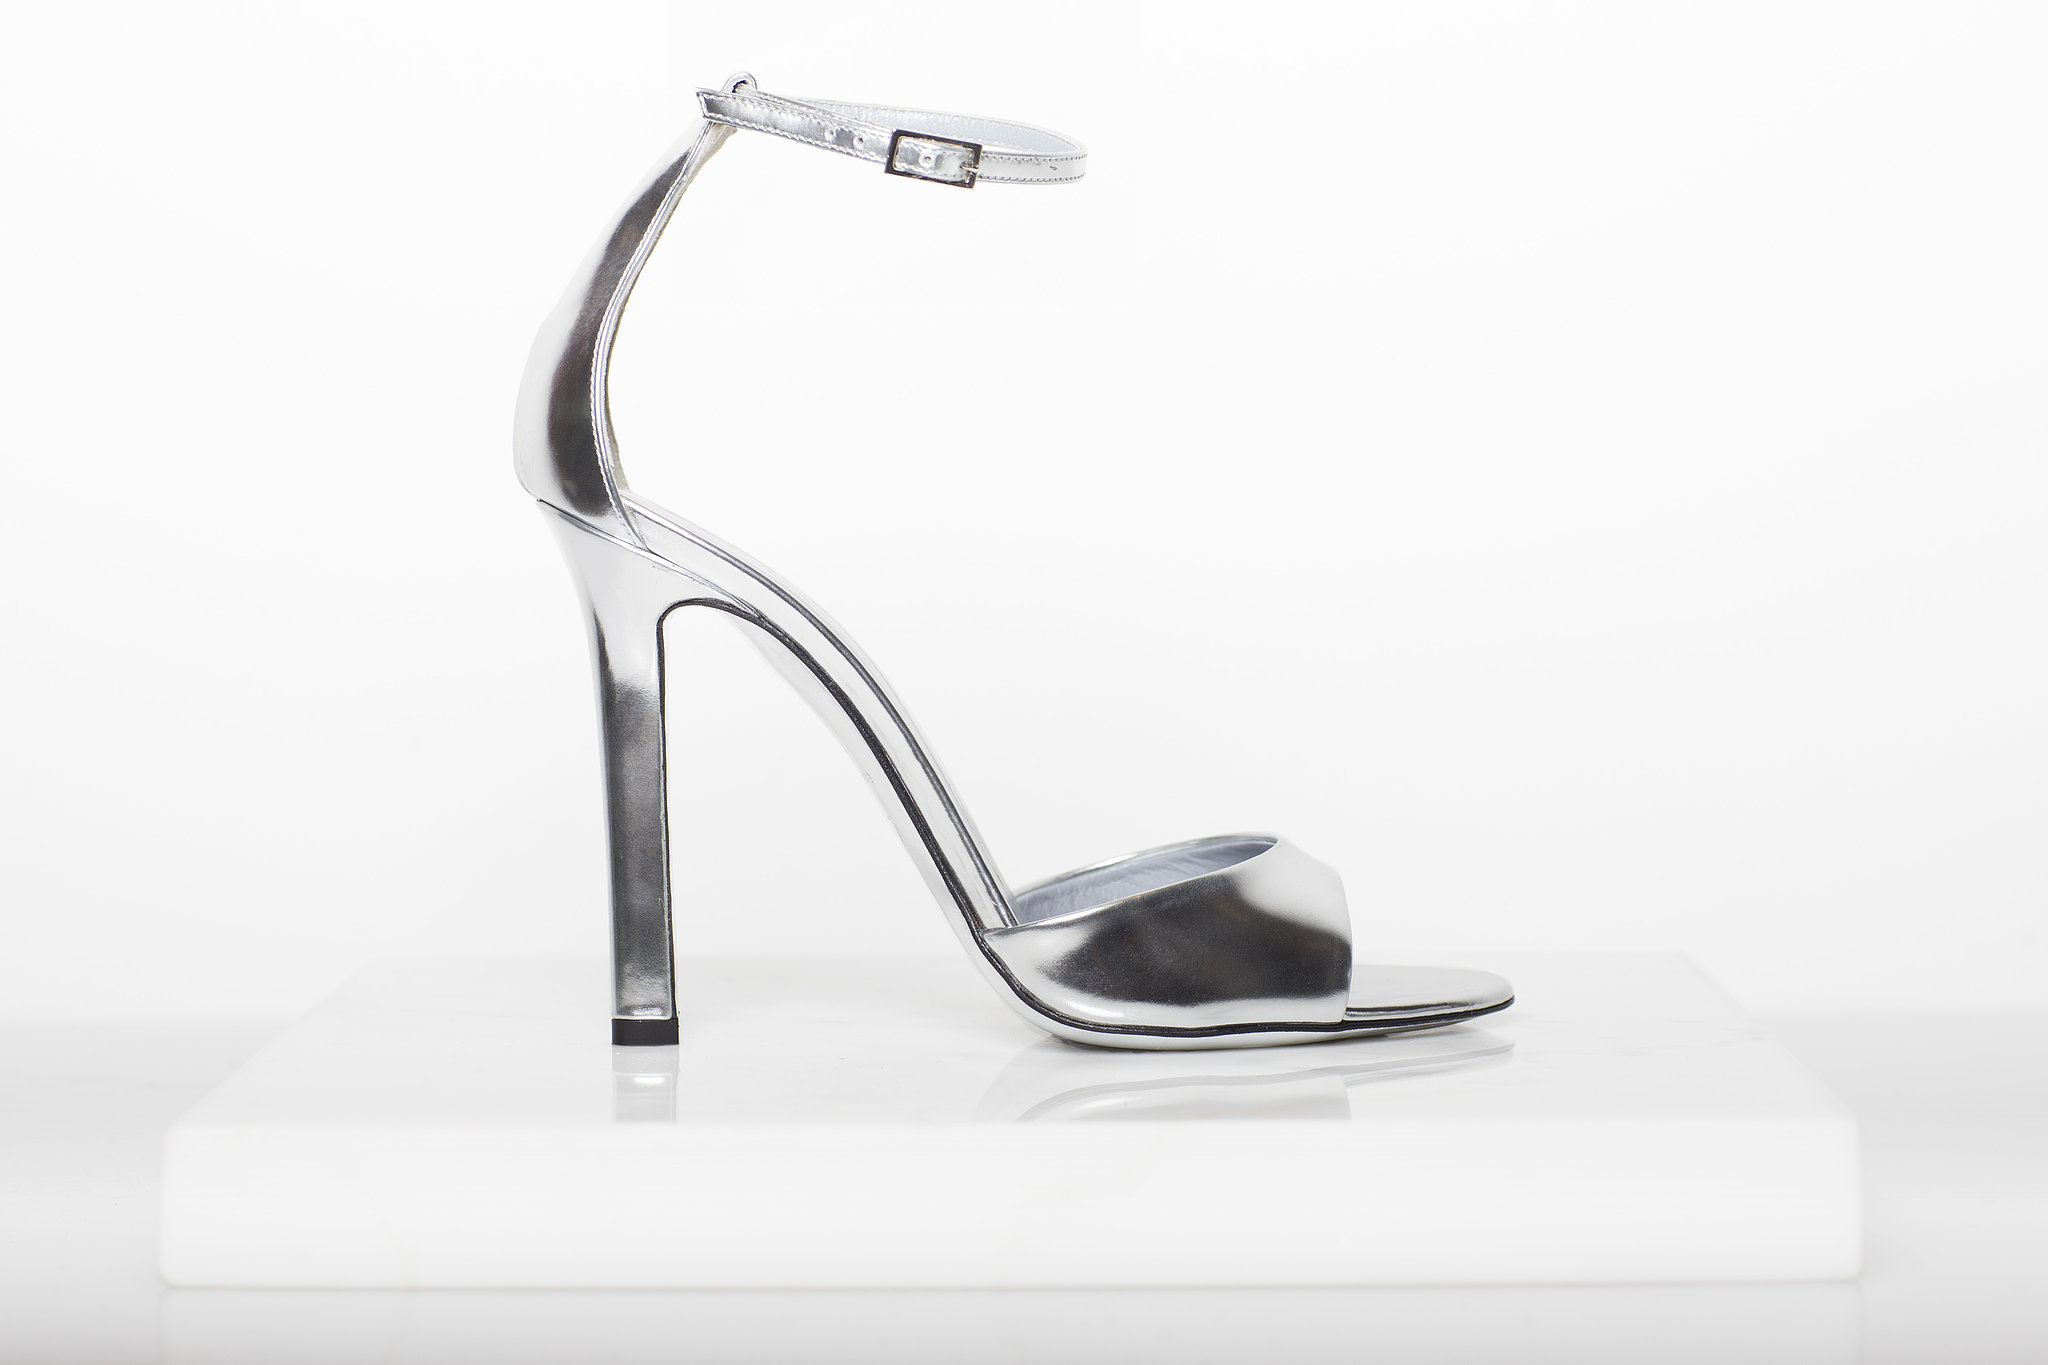 Whisper Sandal in Specchio ($650) Photo courtesy of Tamara Mellon